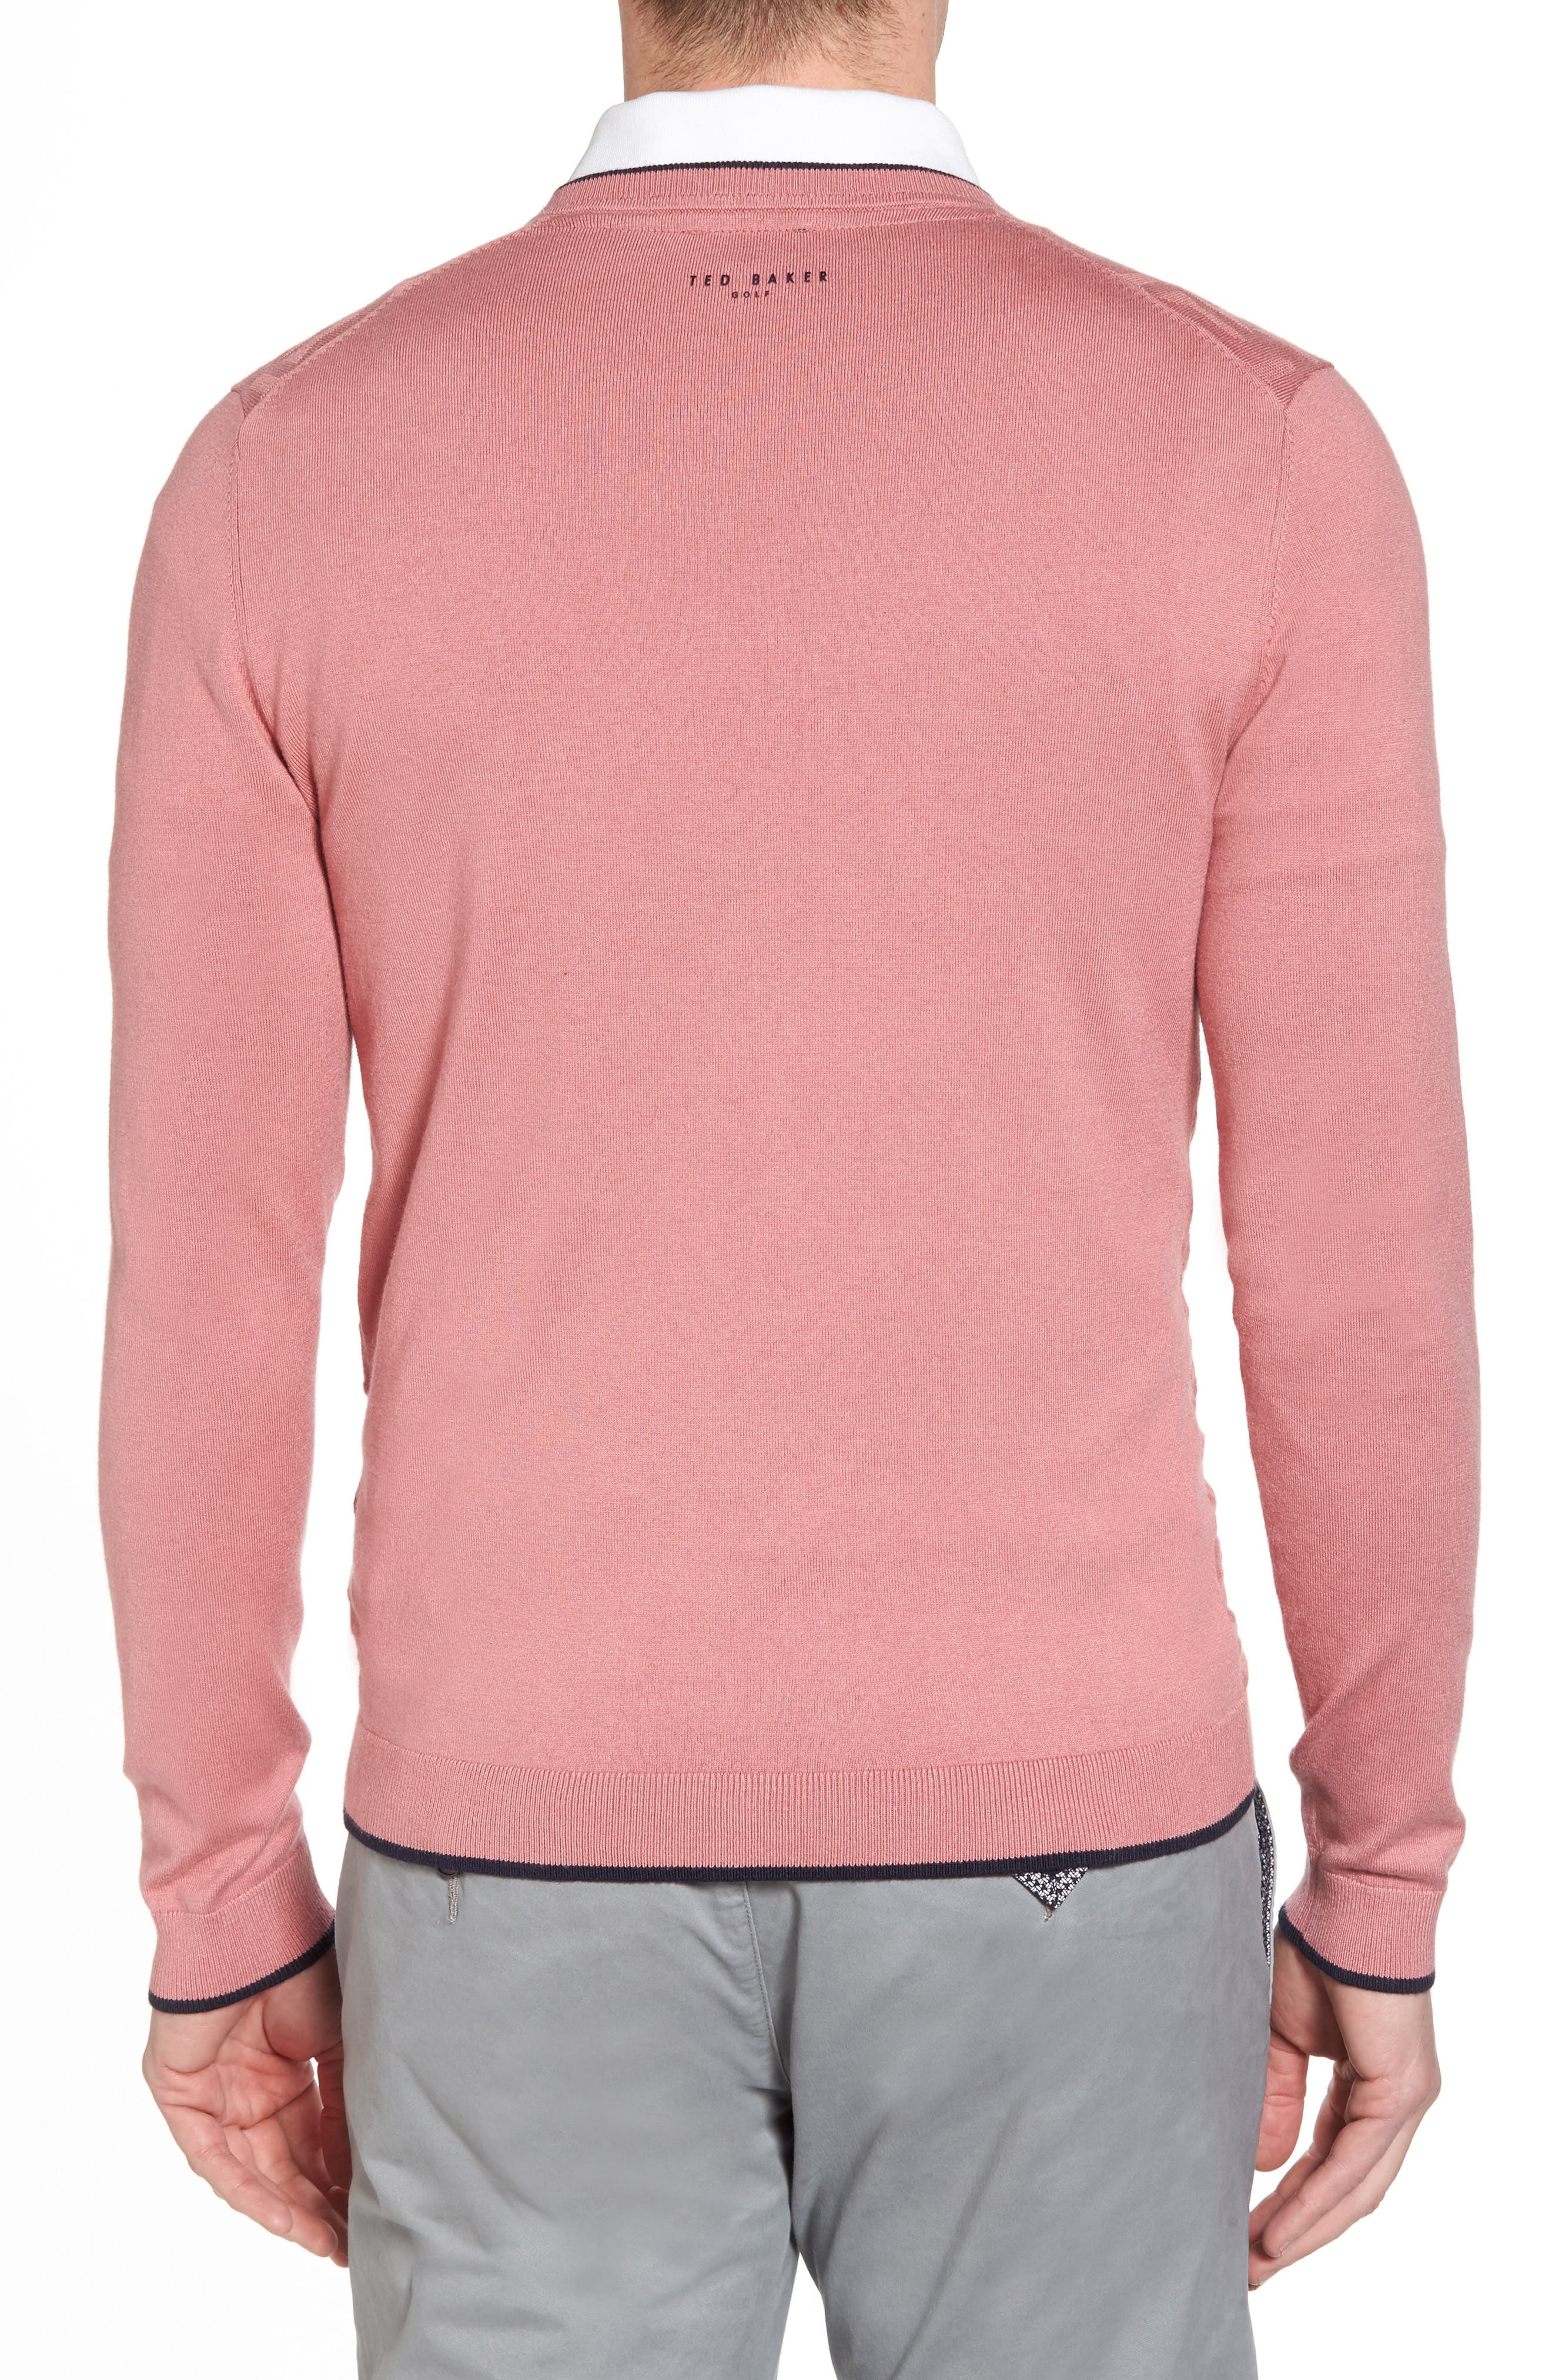 Alternate Image 2  - Ted Baker London Armstro Tipped Golf Tee Sweater